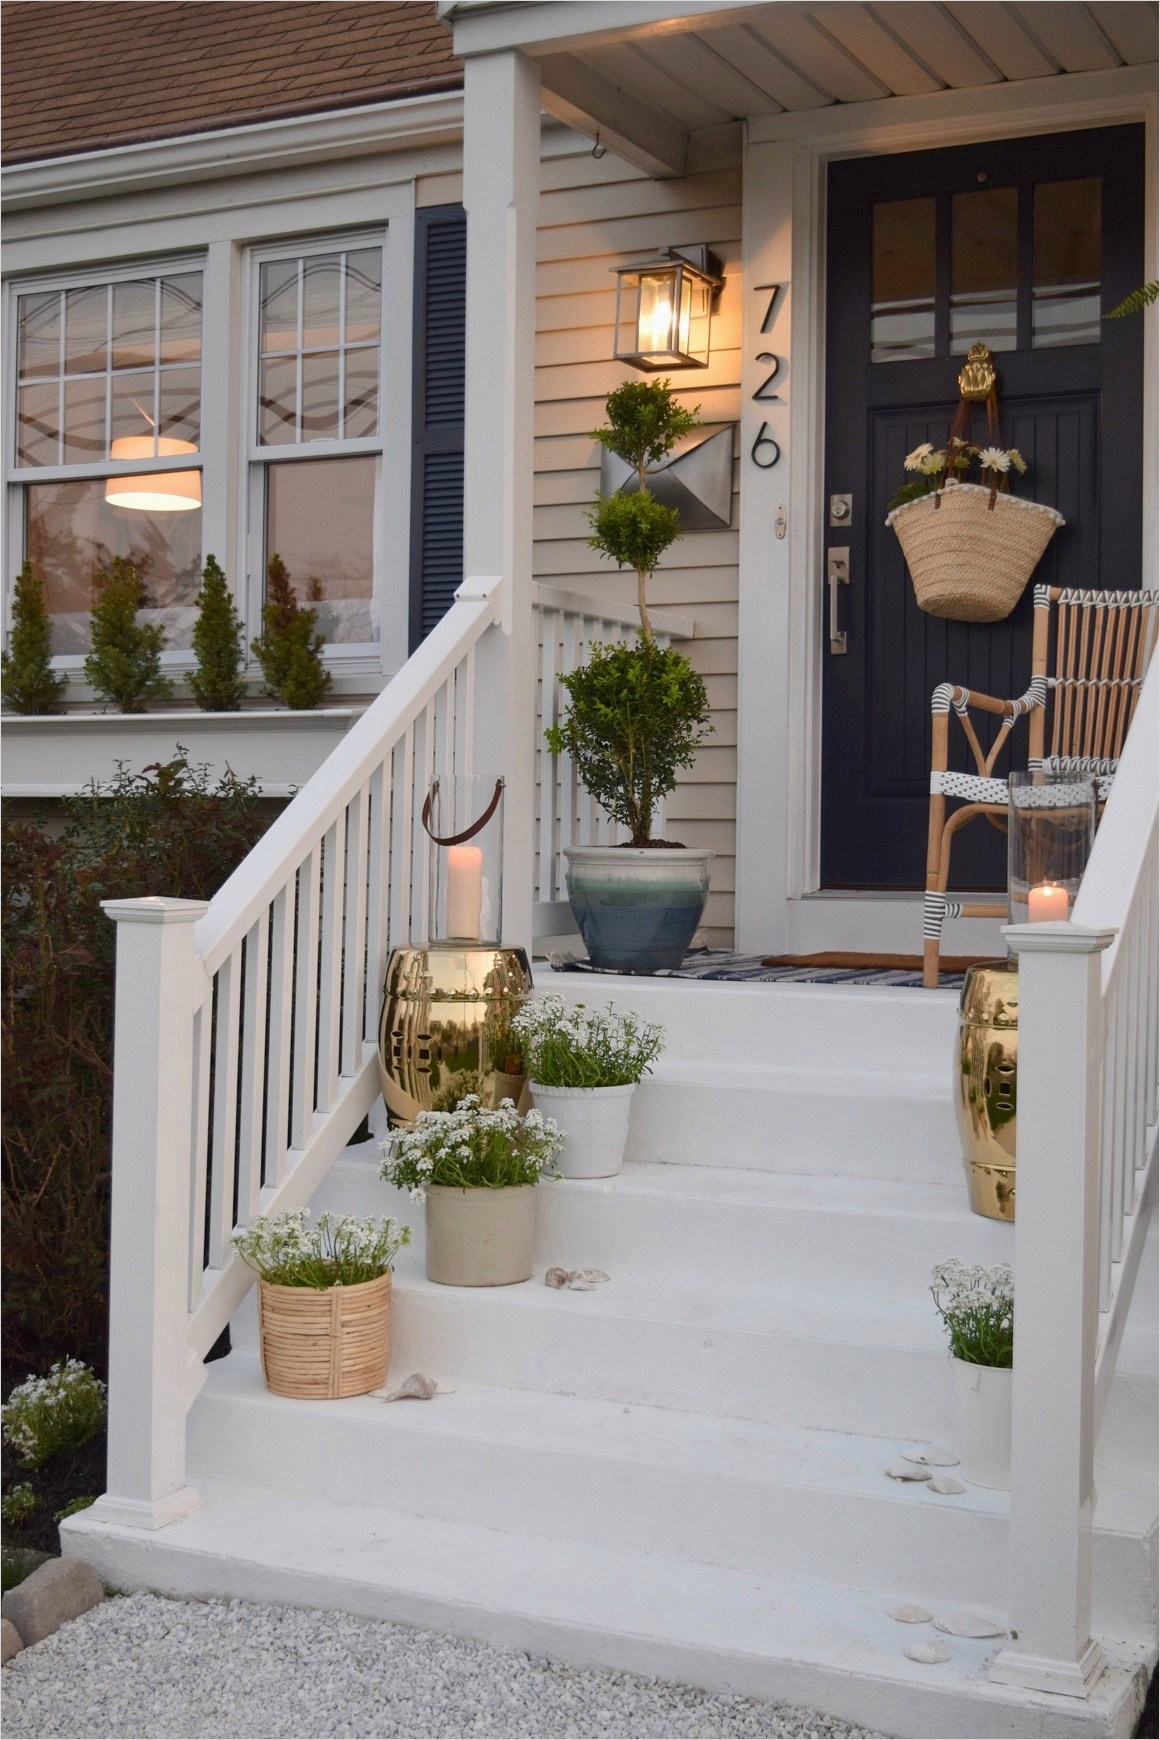 35 Stunning Little Porch Decorating Ideas for 2020 55